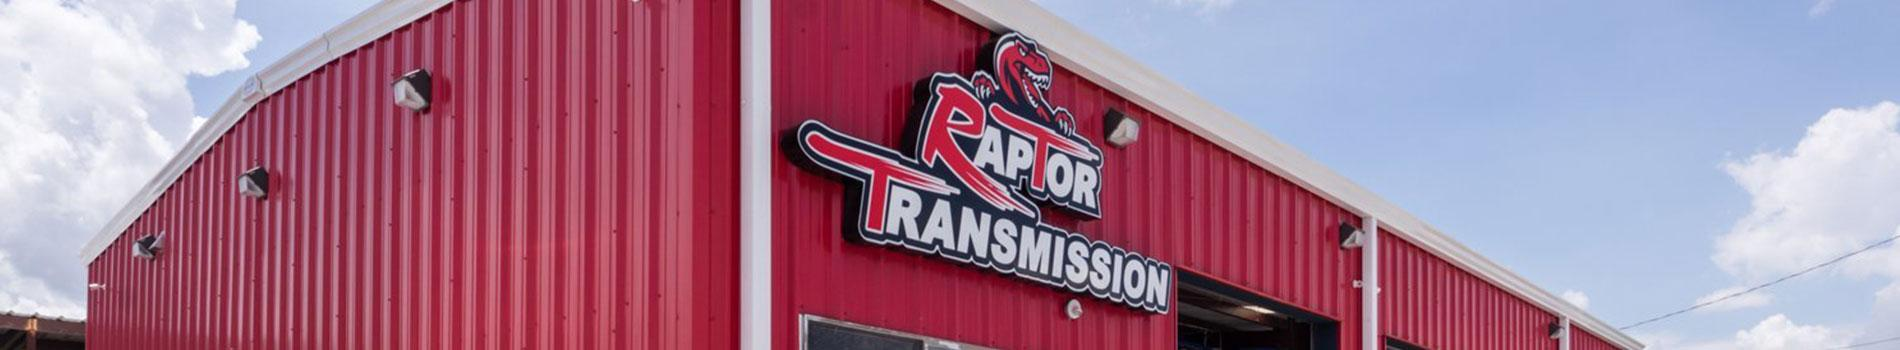 Transmission Repair Services in Greater Houston, TX Area